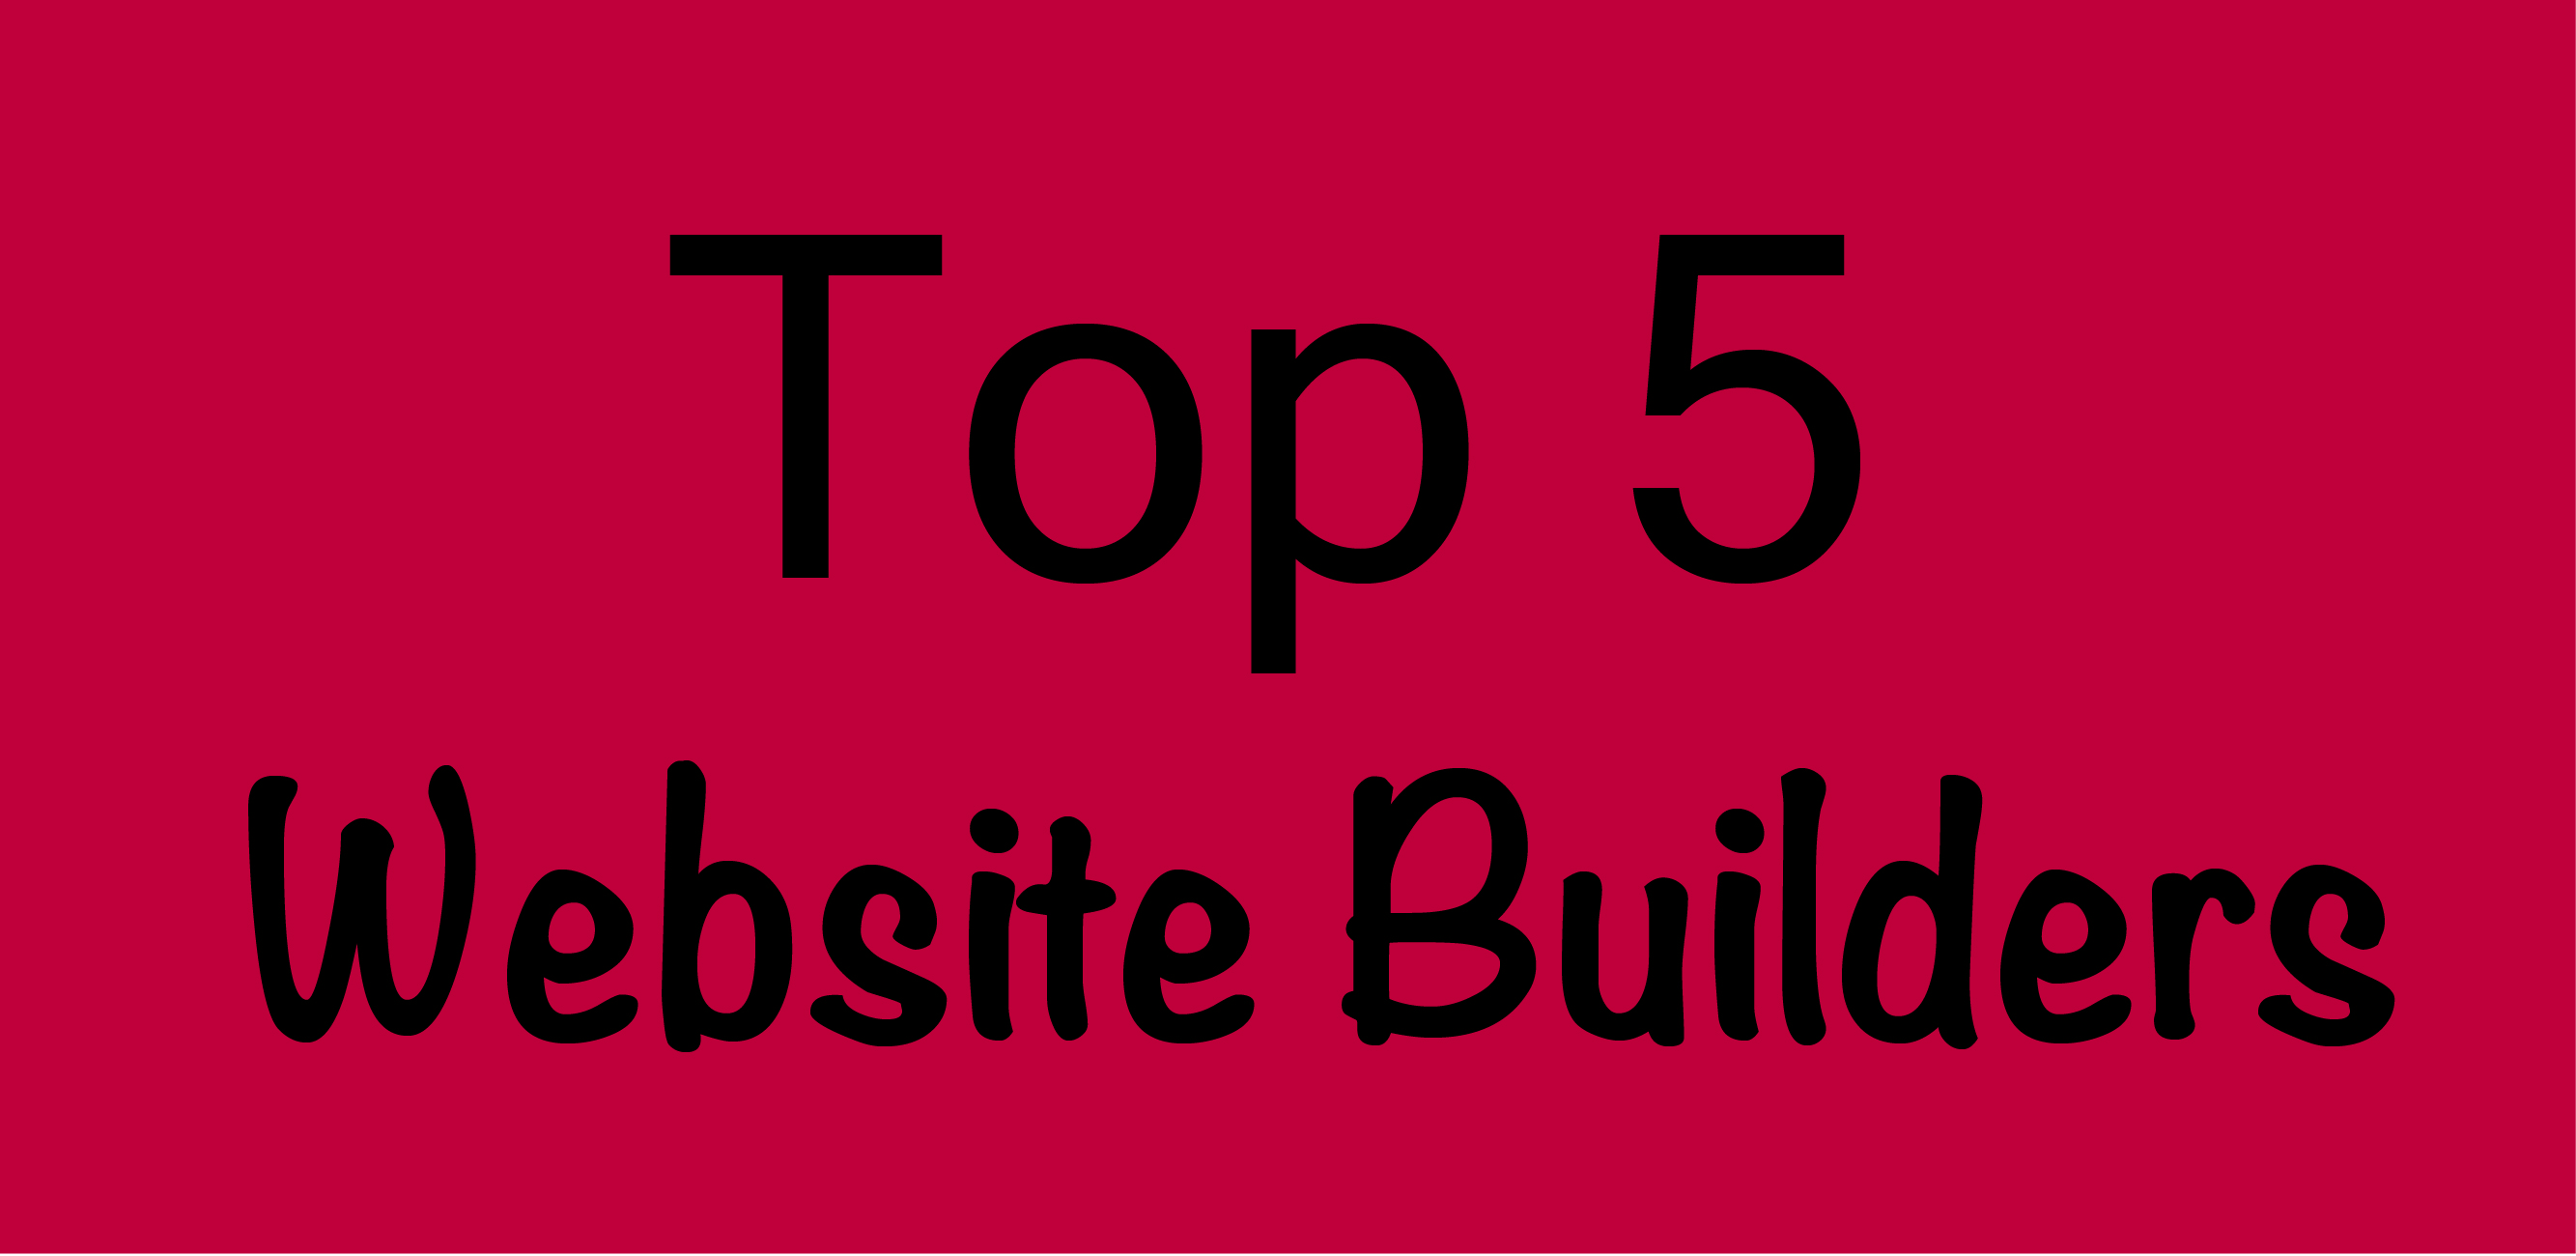 Top 5 Website Builders